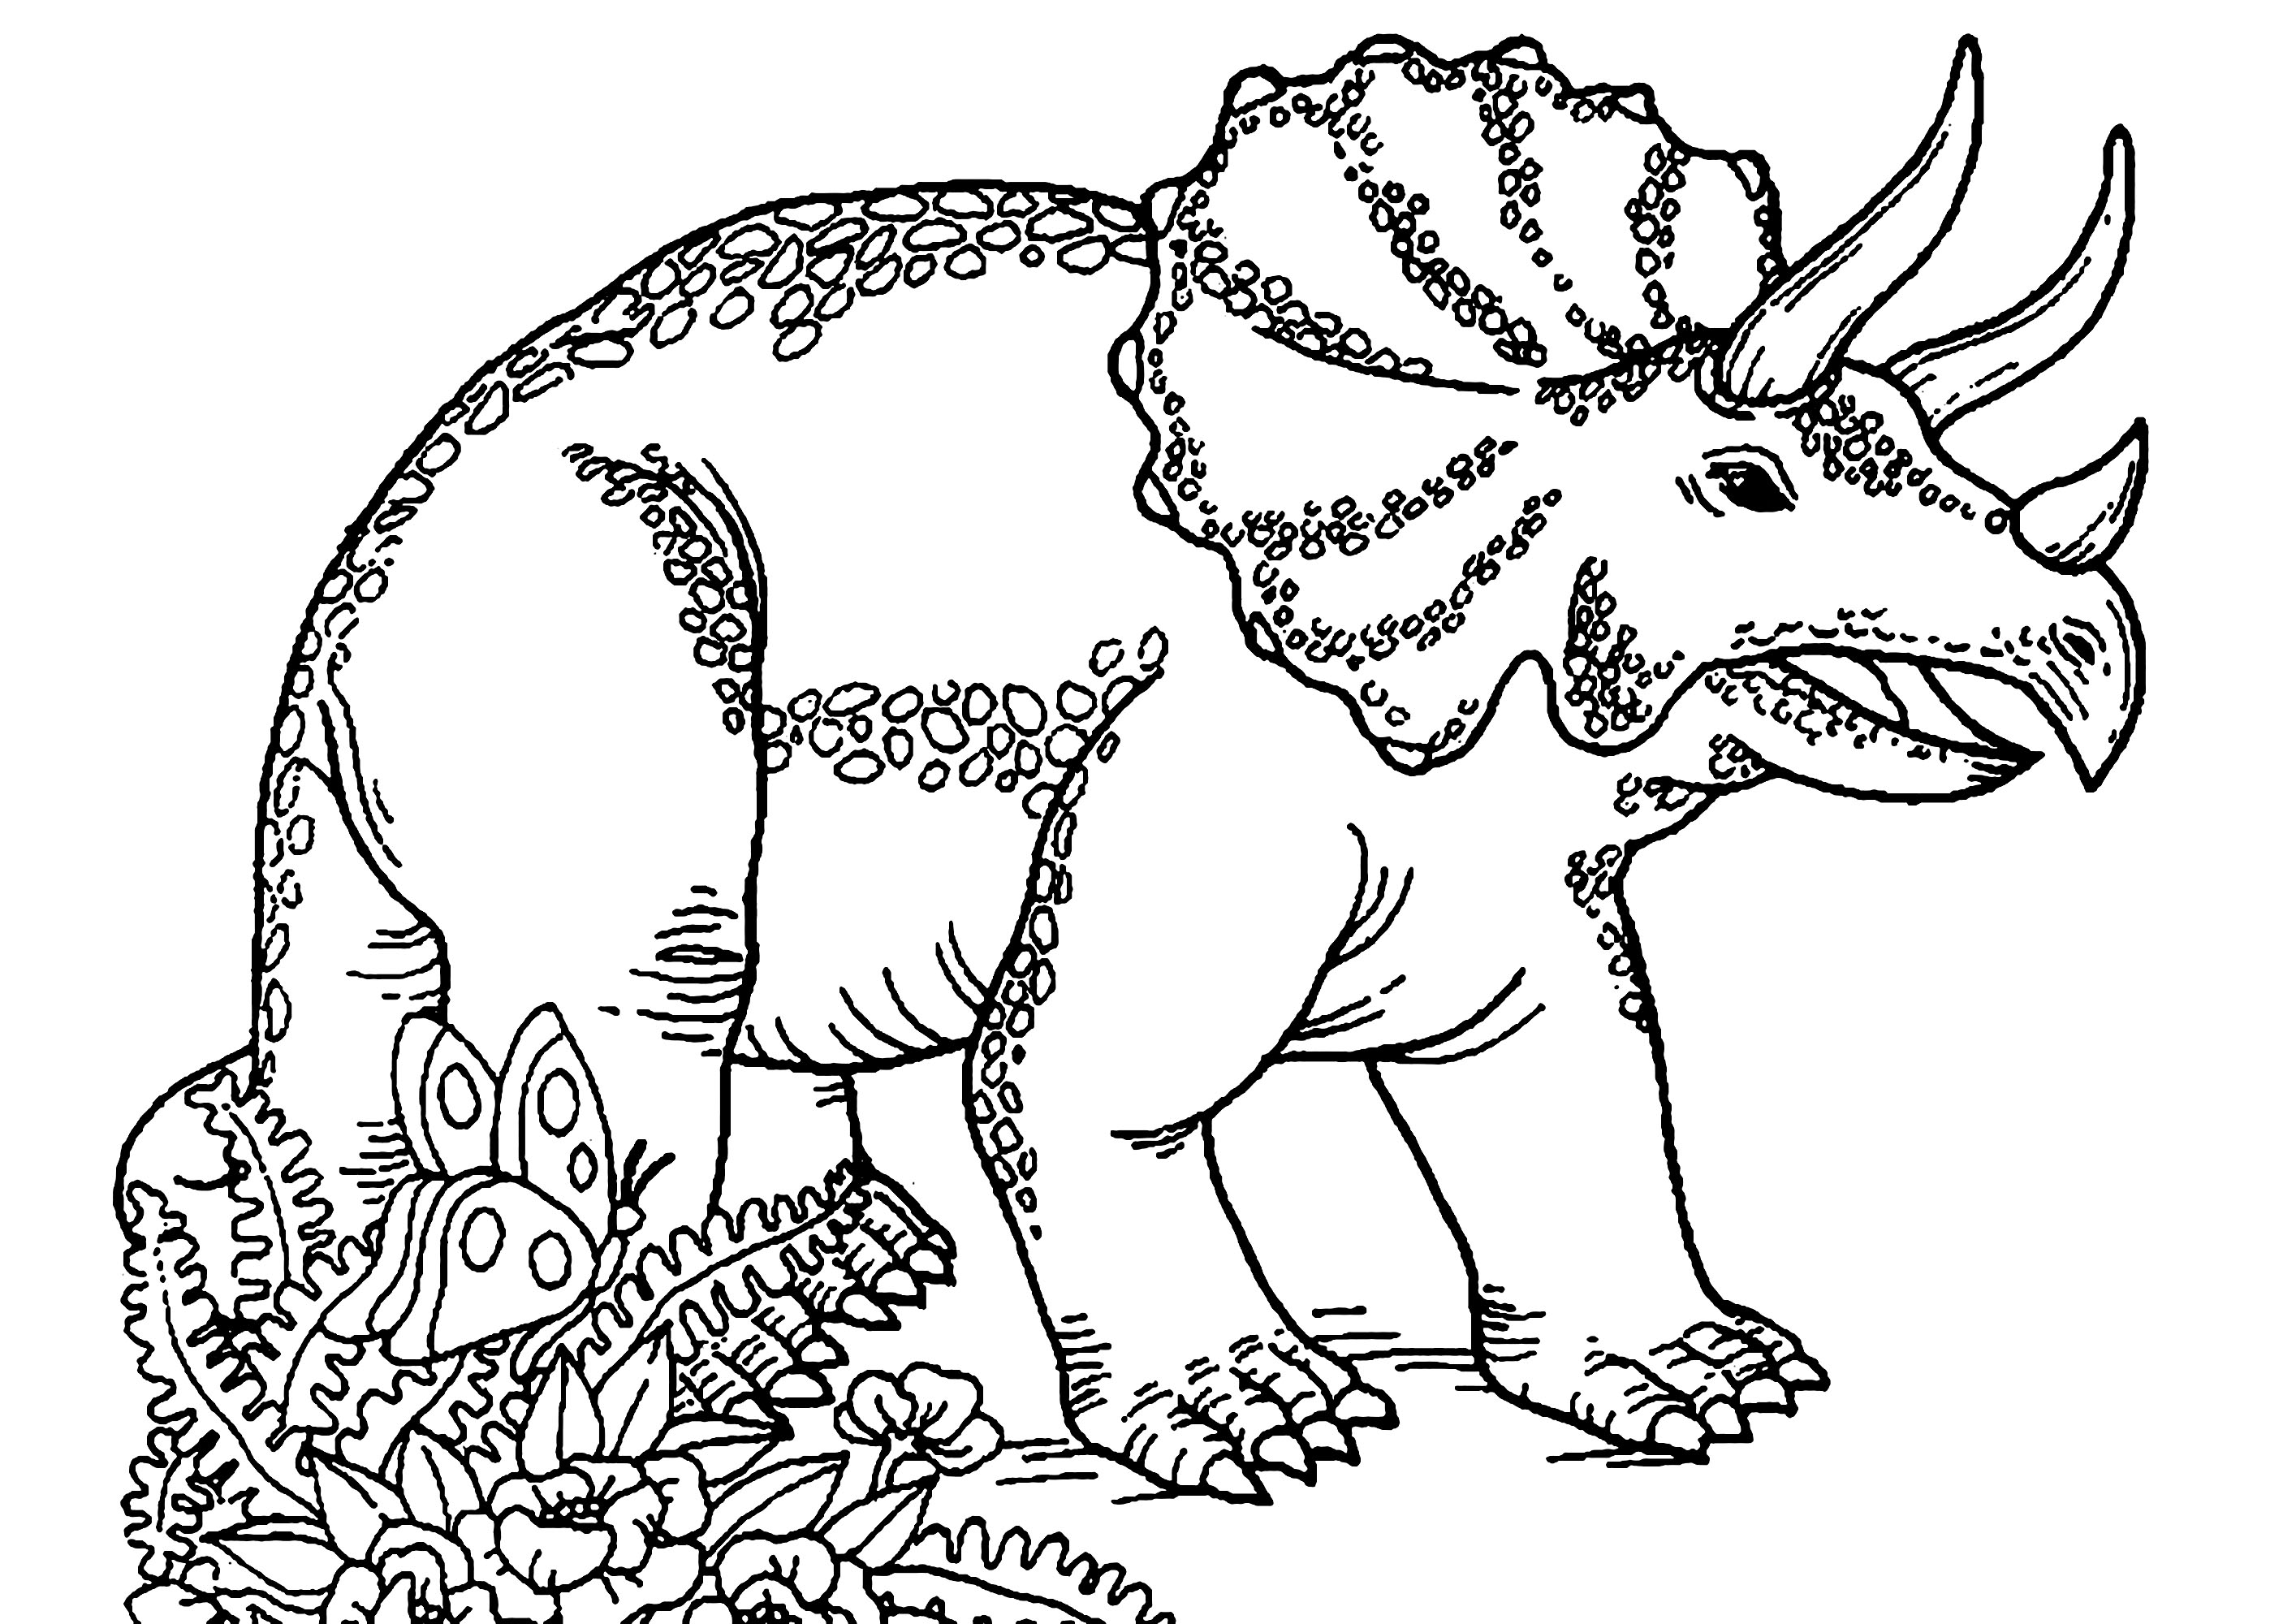 dinosaurs printable coloring pages 10 free printable dinosaur coloring pages 1nza pages coloring dinosaurs printable